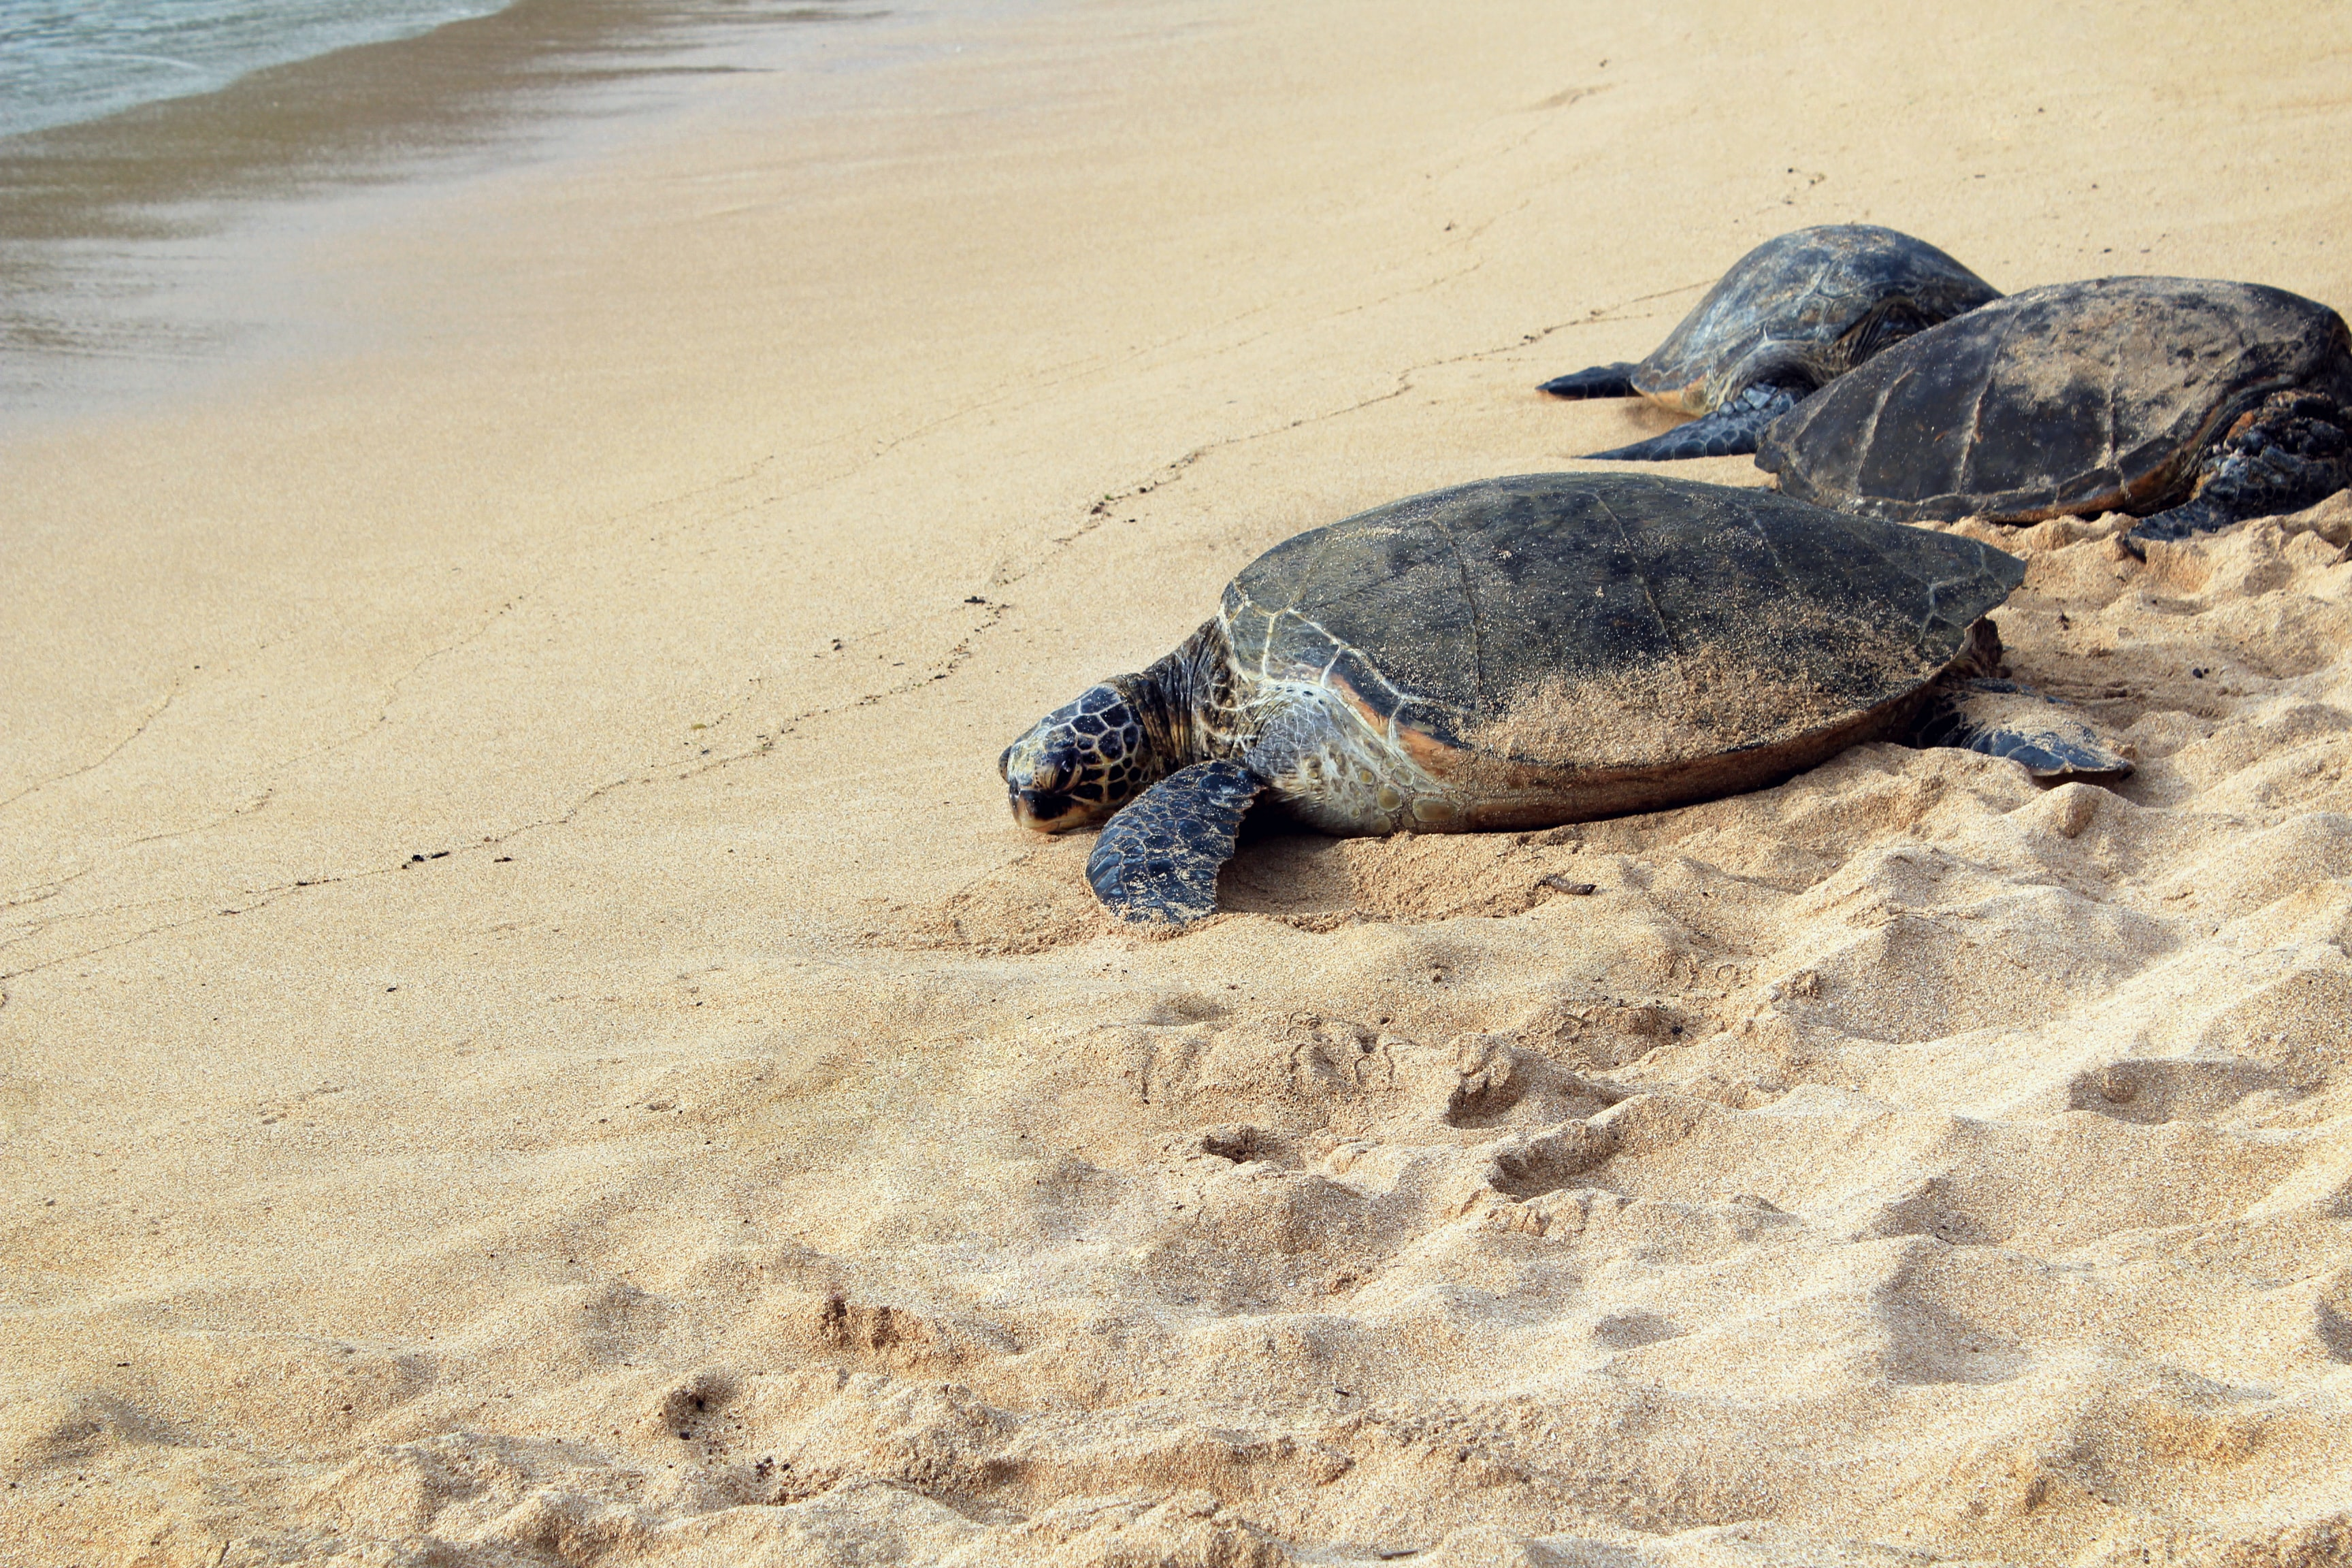 Three turtles on a sand beach at Maui